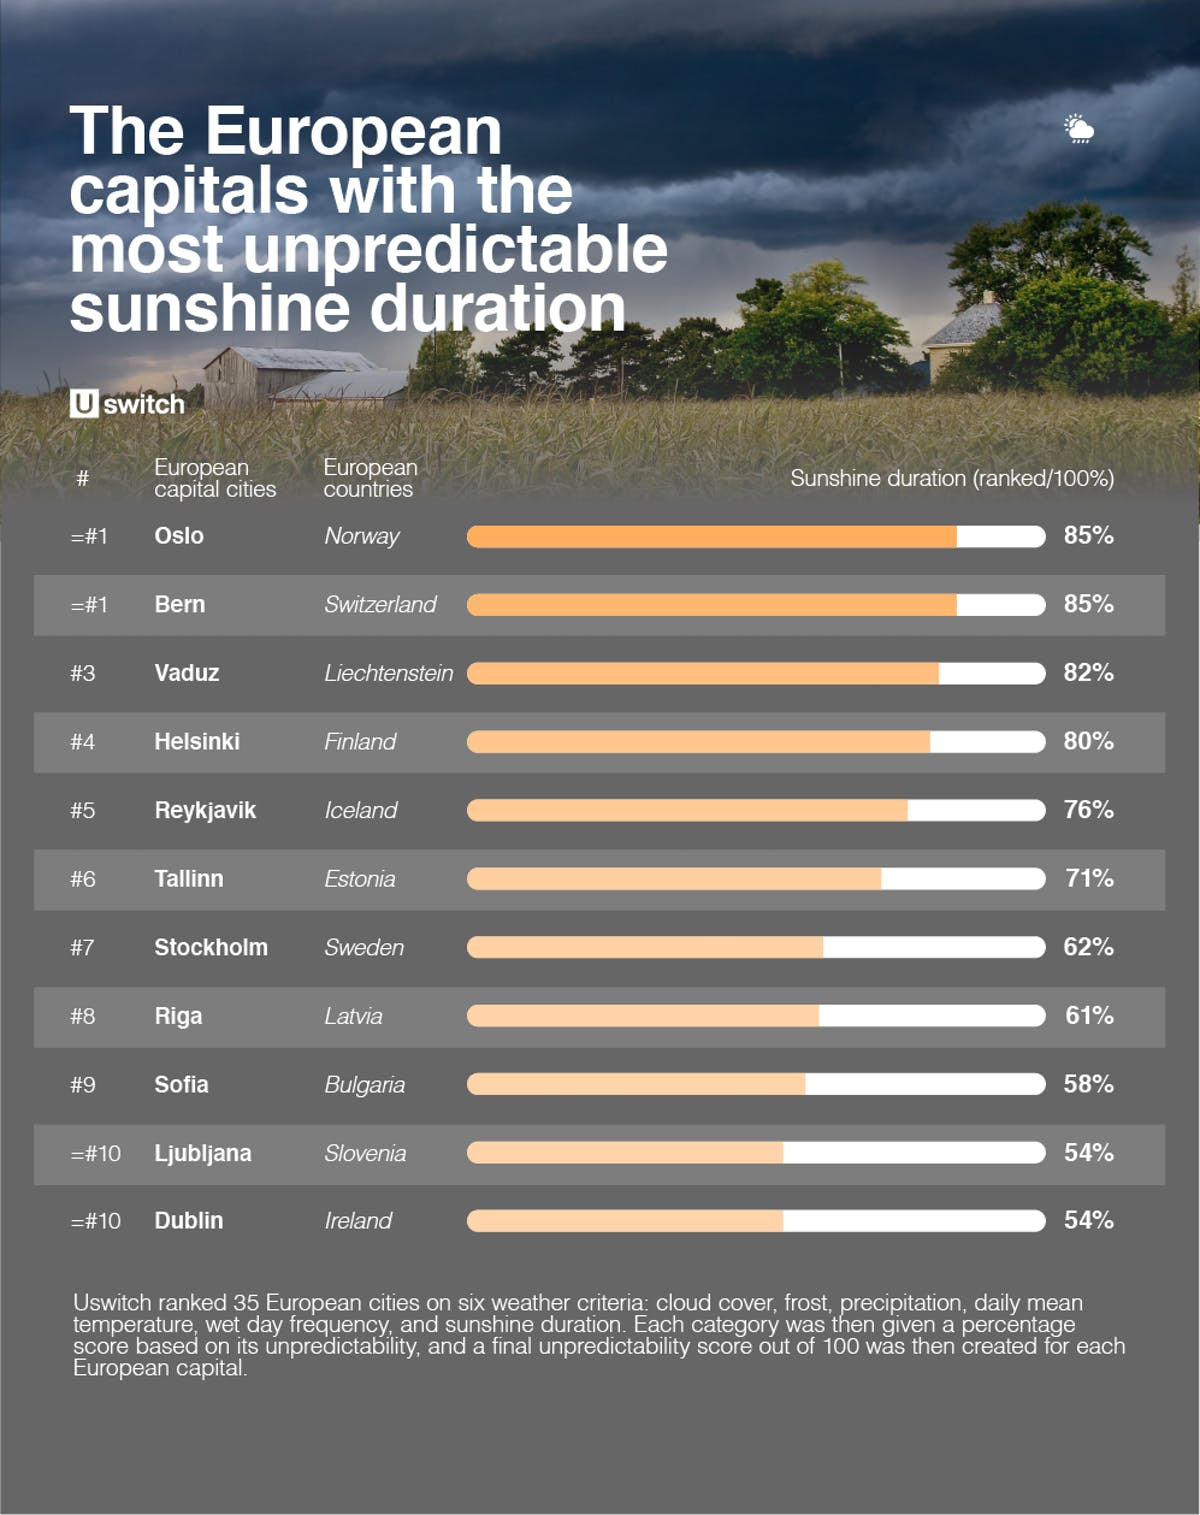 Table of European capitals with the most unpredictable weather sunshine duration